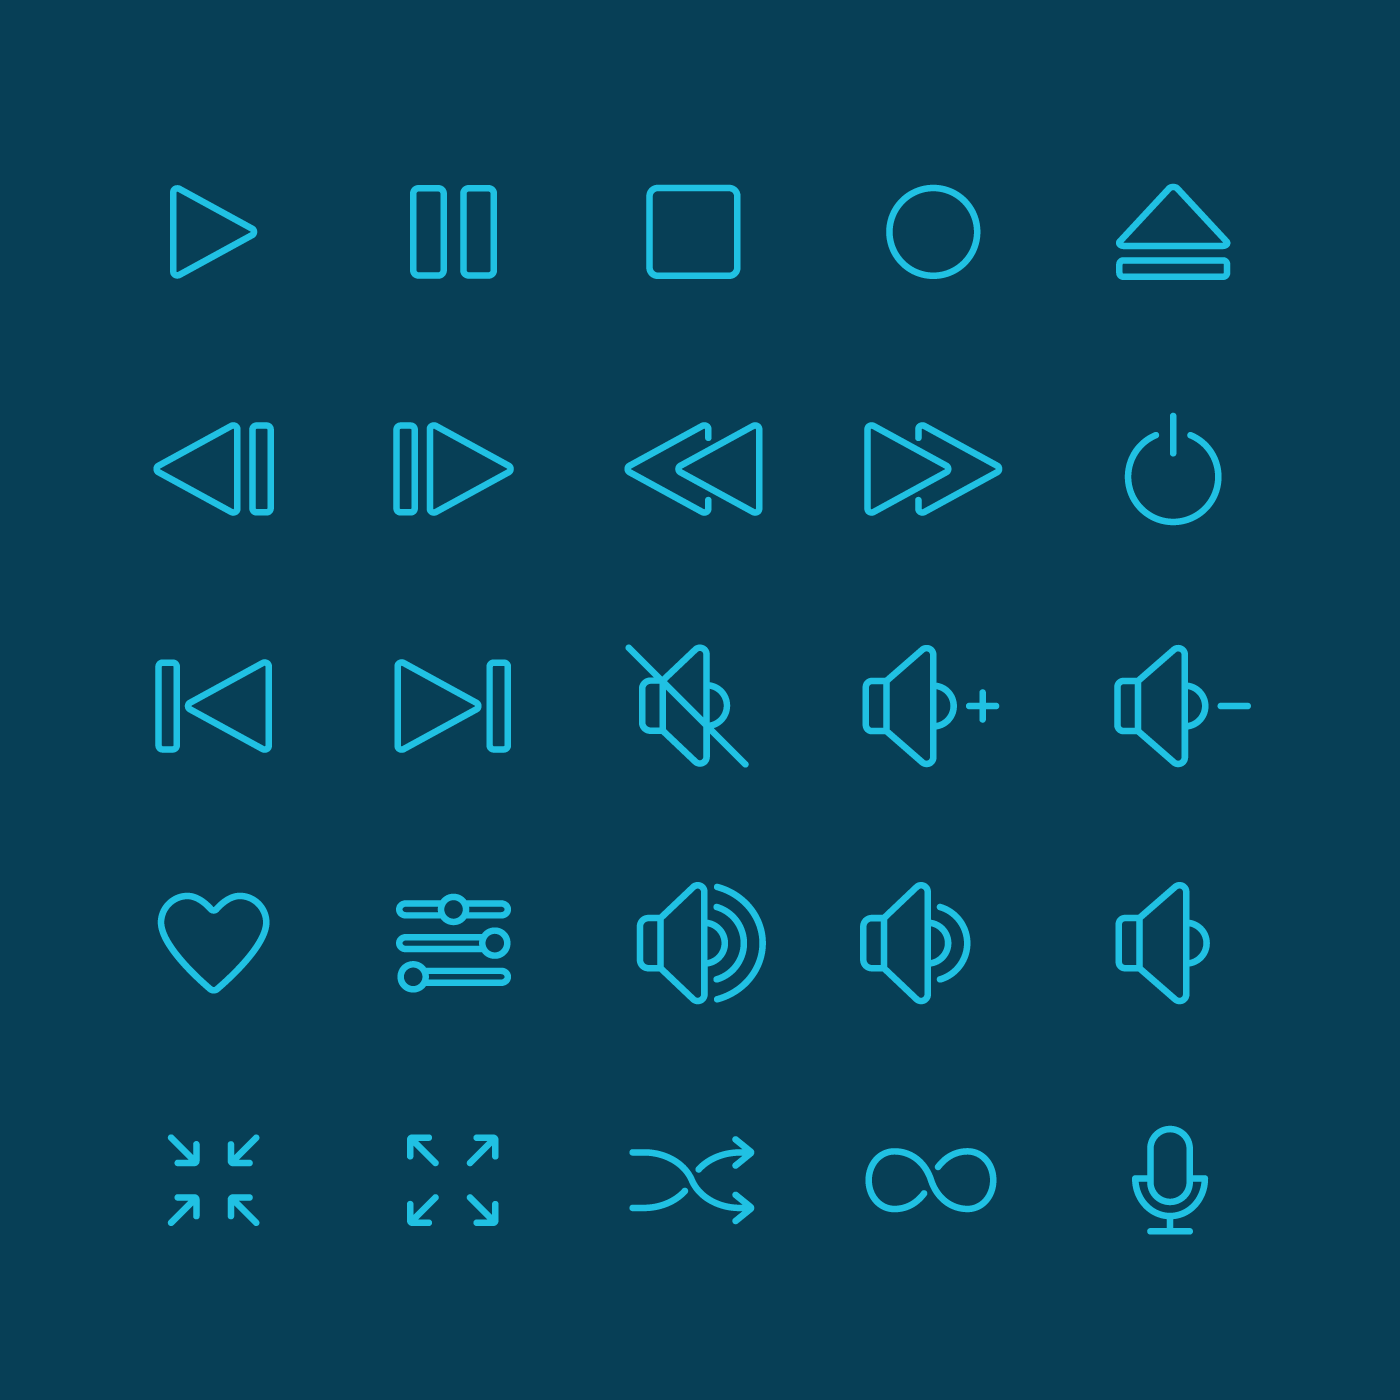 Media Player Icon Set Download On Behance Find The Download Link To This Set On Behance This Icon Set Is The Perfect Fit For Both M Icon Set Icon Icon Design